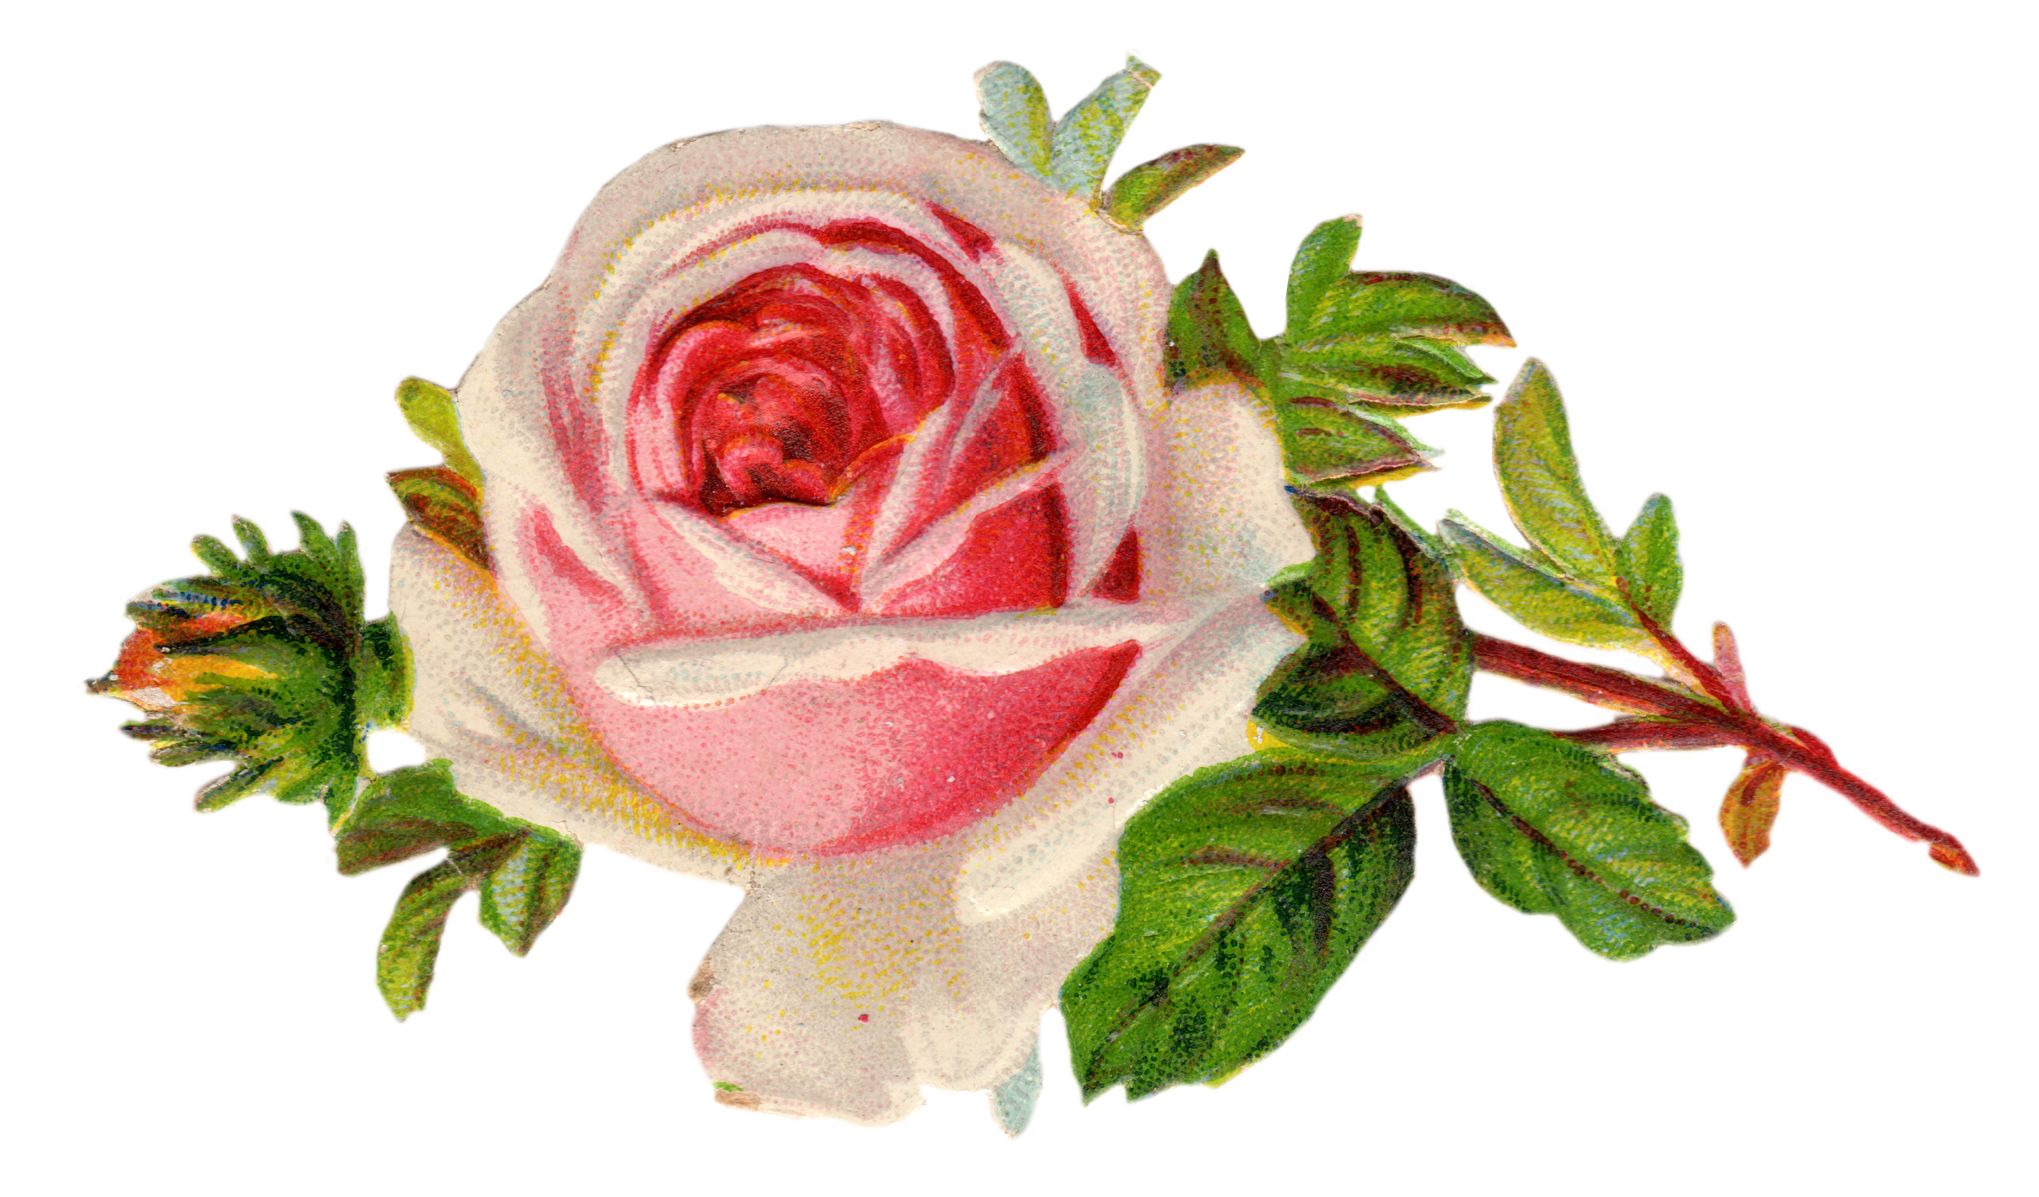 Rose free clipart graphic transparent Free Art Rose, Download Free Clip Art, Free Clip Art on Clipart Library graphic transparent